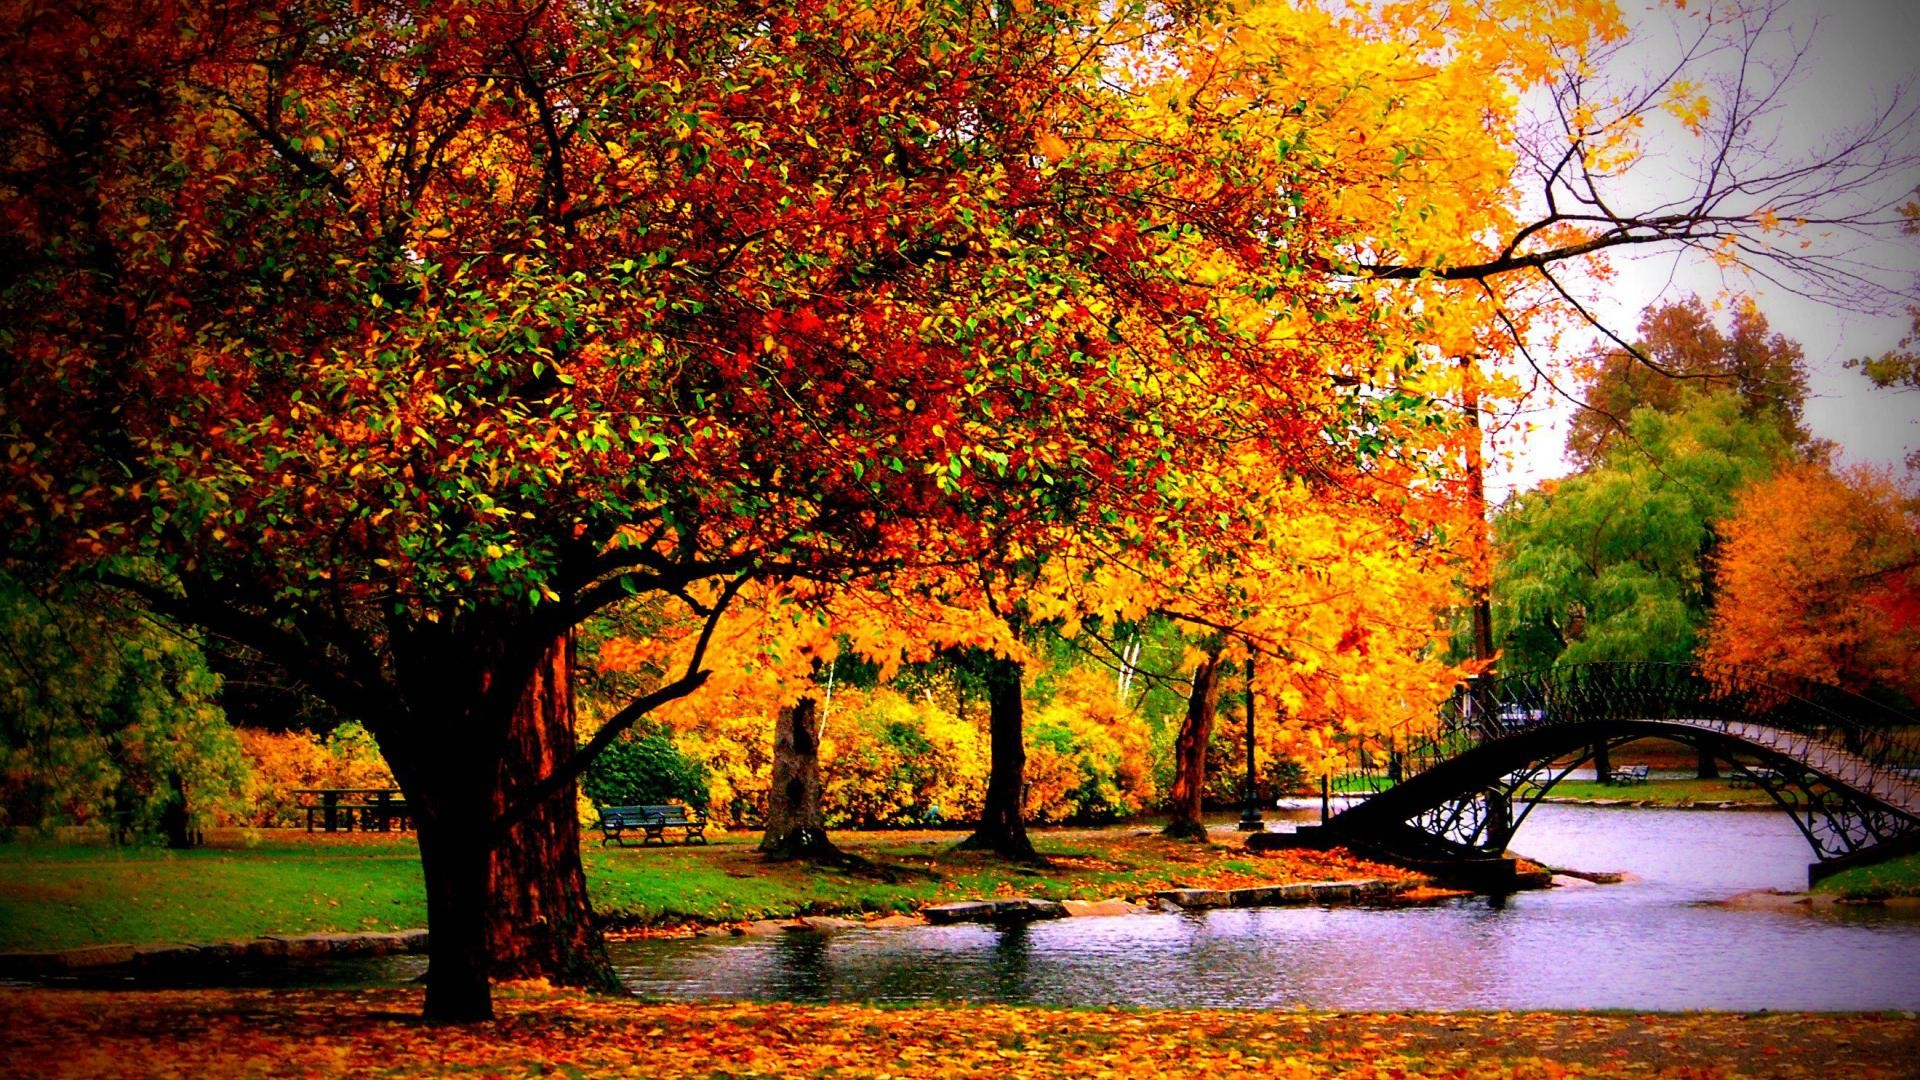 Fall Pictures For Desktop Wallpaper 62 Pictures